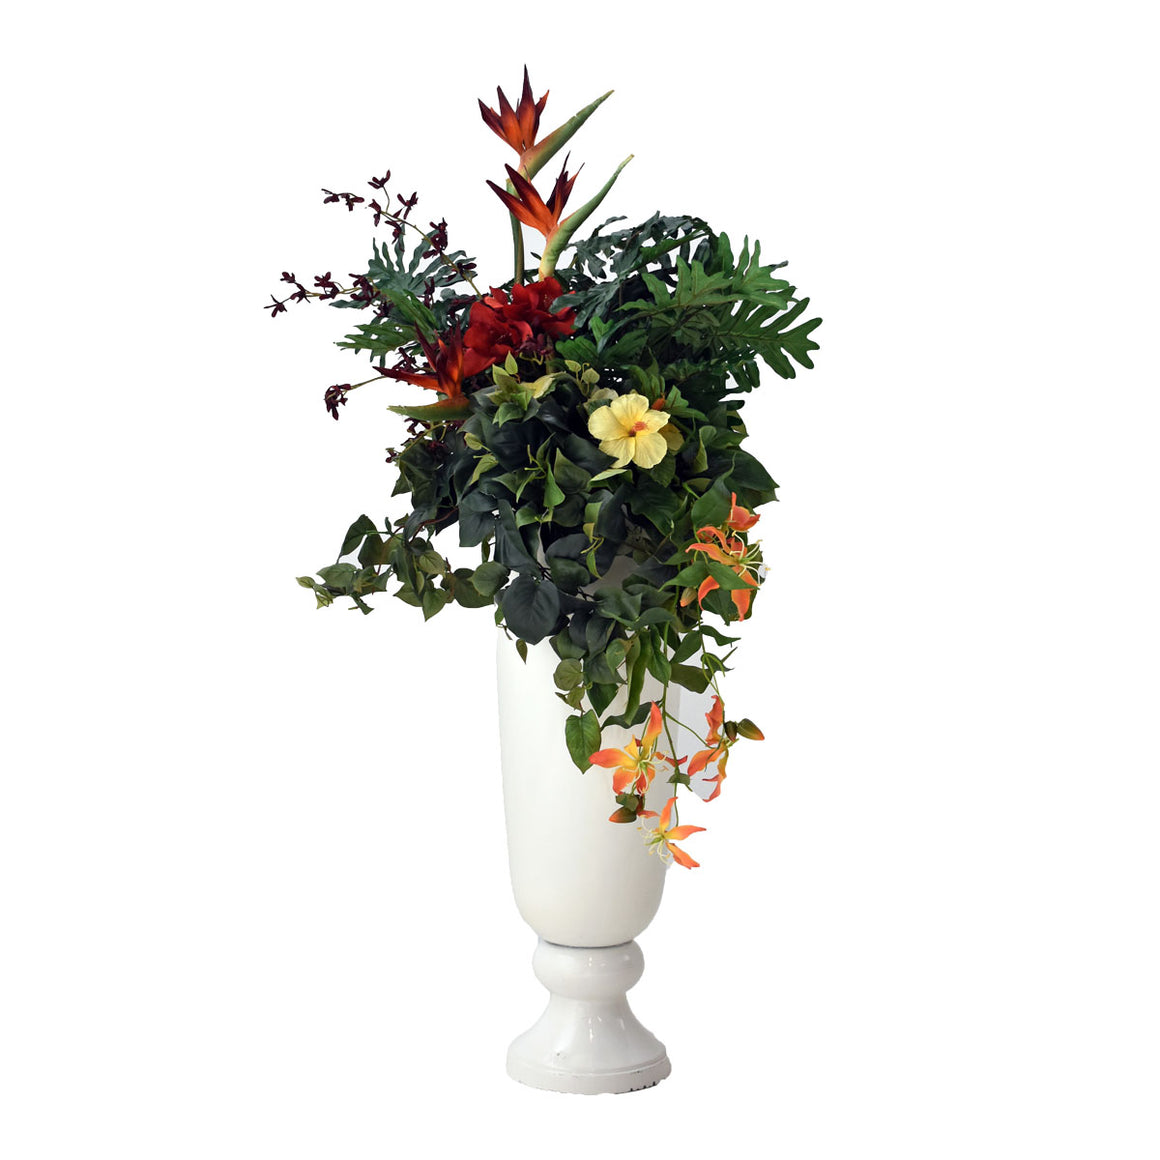 Pre-Made Large Arrangement - Tropical Floral in White Urn